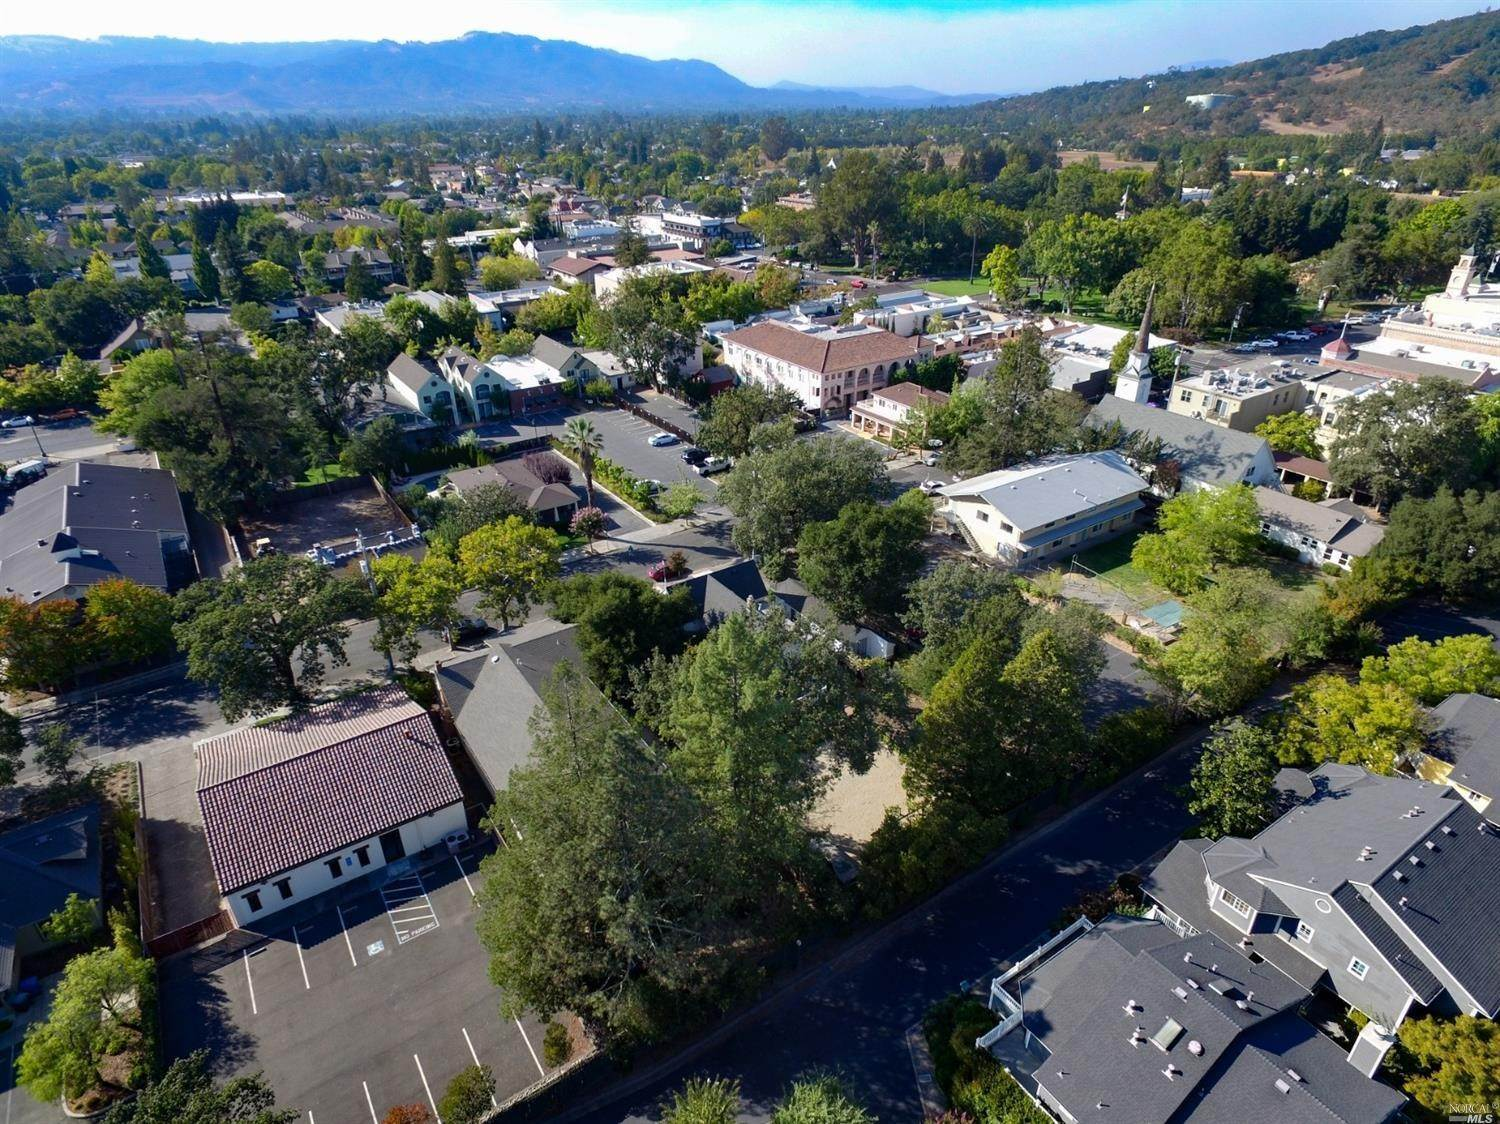 Property for Sale at 564 1st Street, Sonoma Sonoma, California 95476 United States